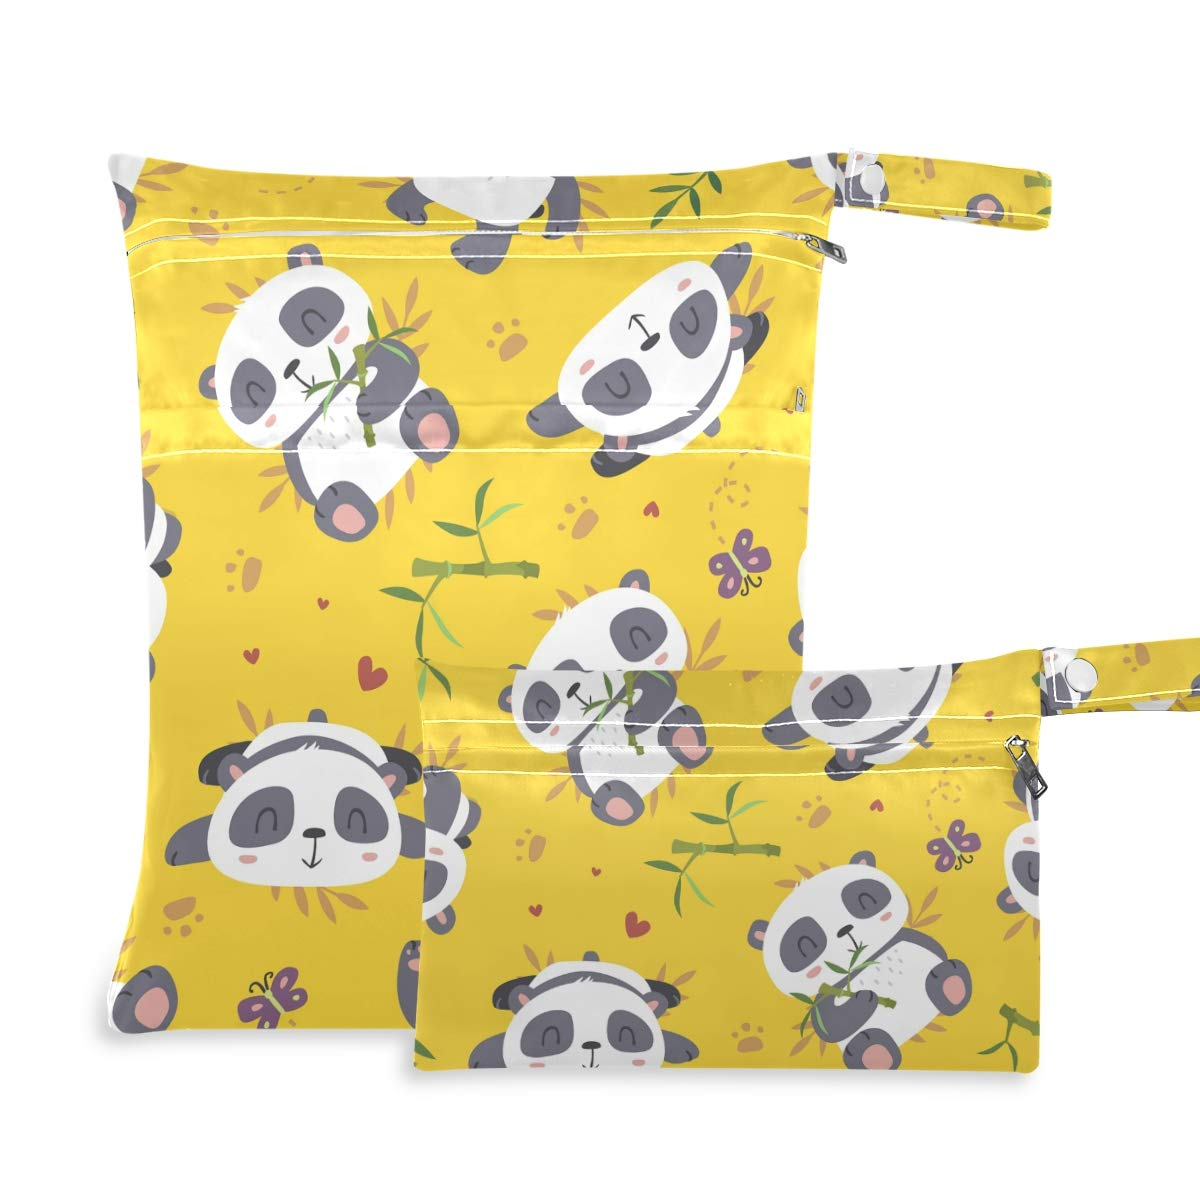 Qilmy 2pcs Panda Cloth Diaper Wet Dry Bag Waterproof Reusable Wet Dry Organizer with Zipper for Travel, Beach, Pool, Diapers, Gym Clothes, Wet Swimsuits